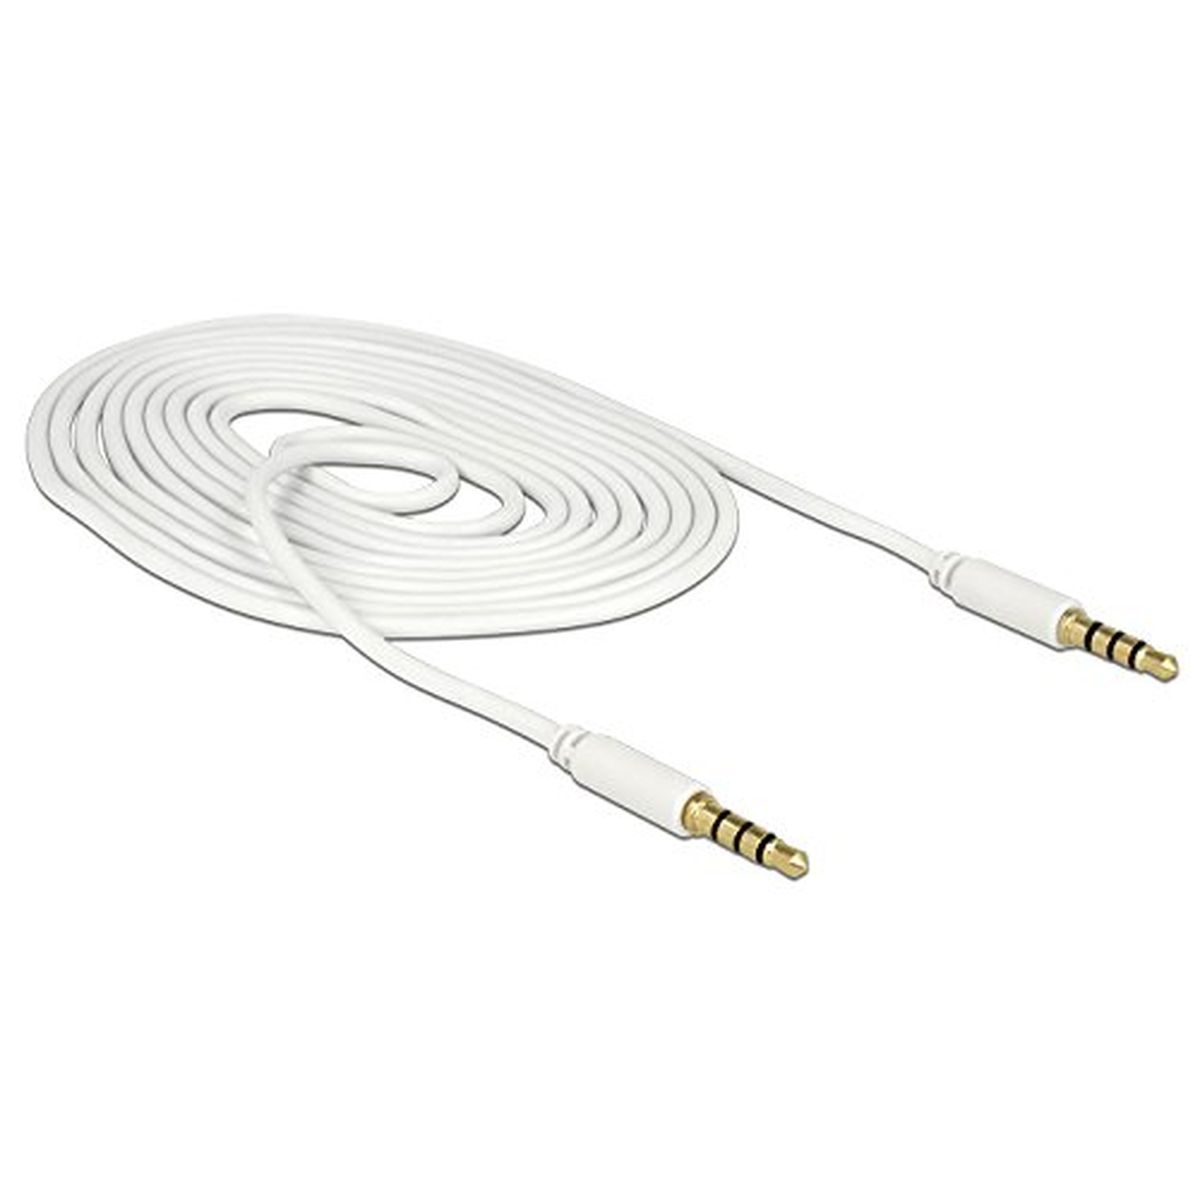 DeLOCK Kabel Klinke 4 Pin 3,5 mm Stecker > Stecker n